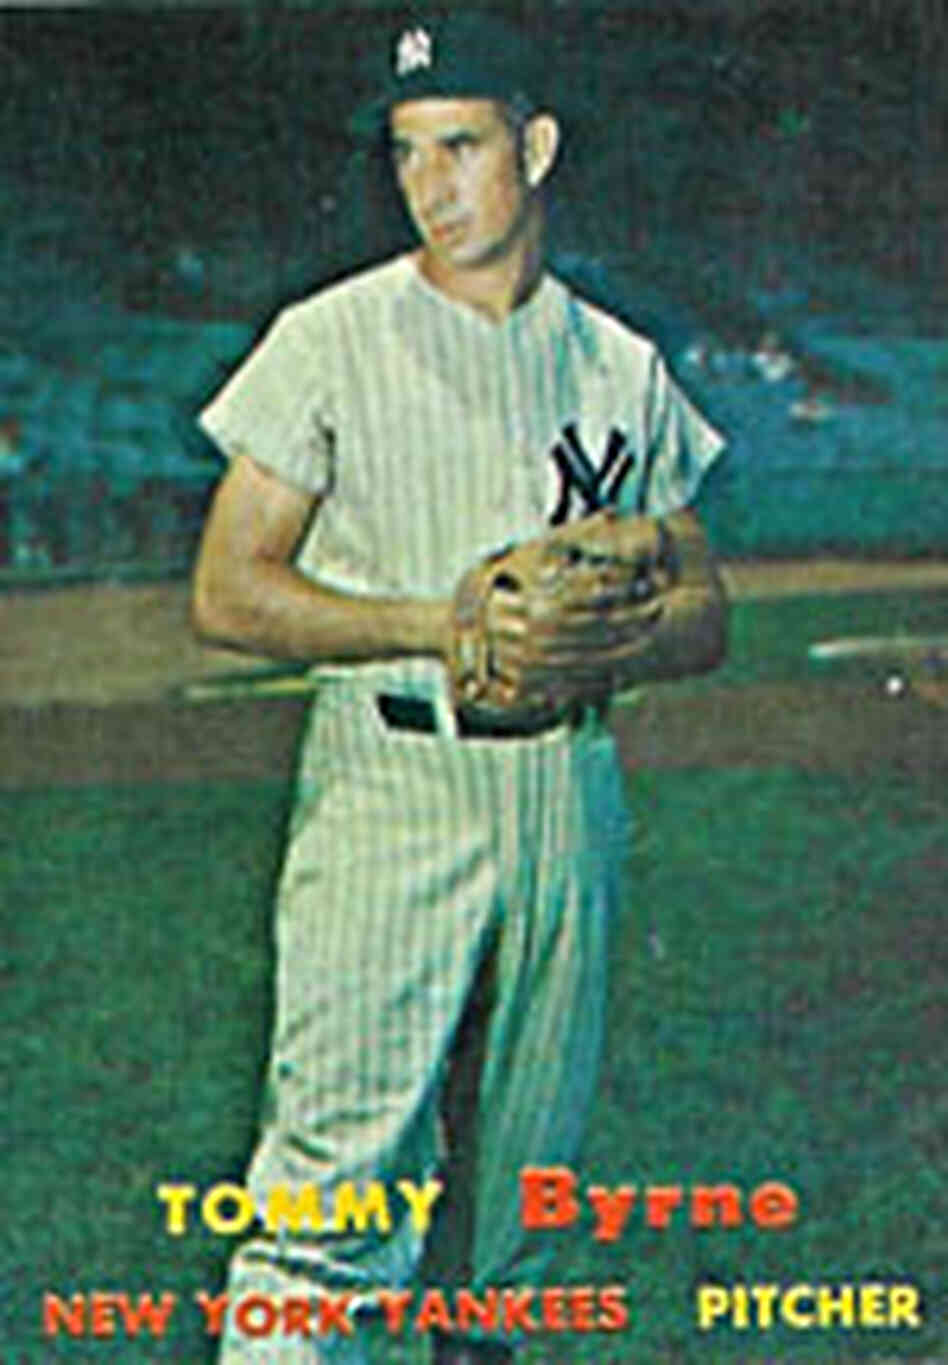 Tommy Byrne baseball card